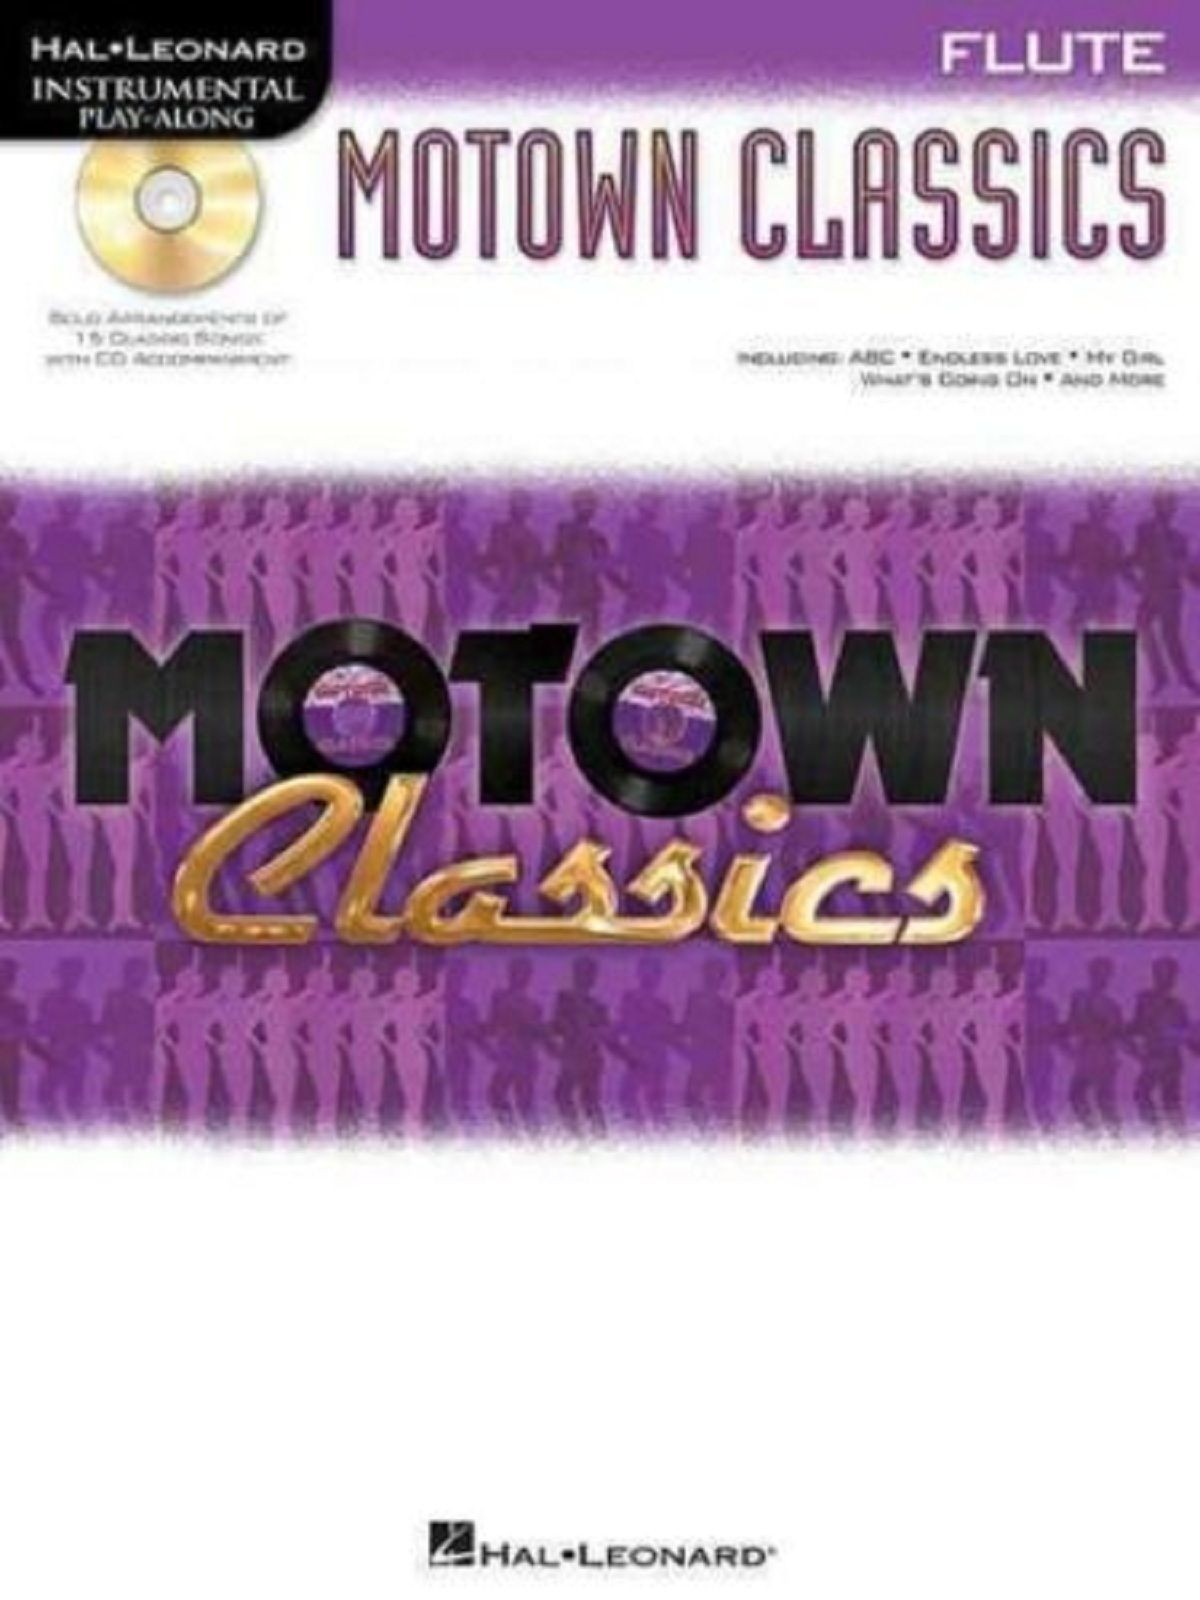 Instrumental Playalong Motown Classics Flute Songs Solo Sheet Music CD Book S123